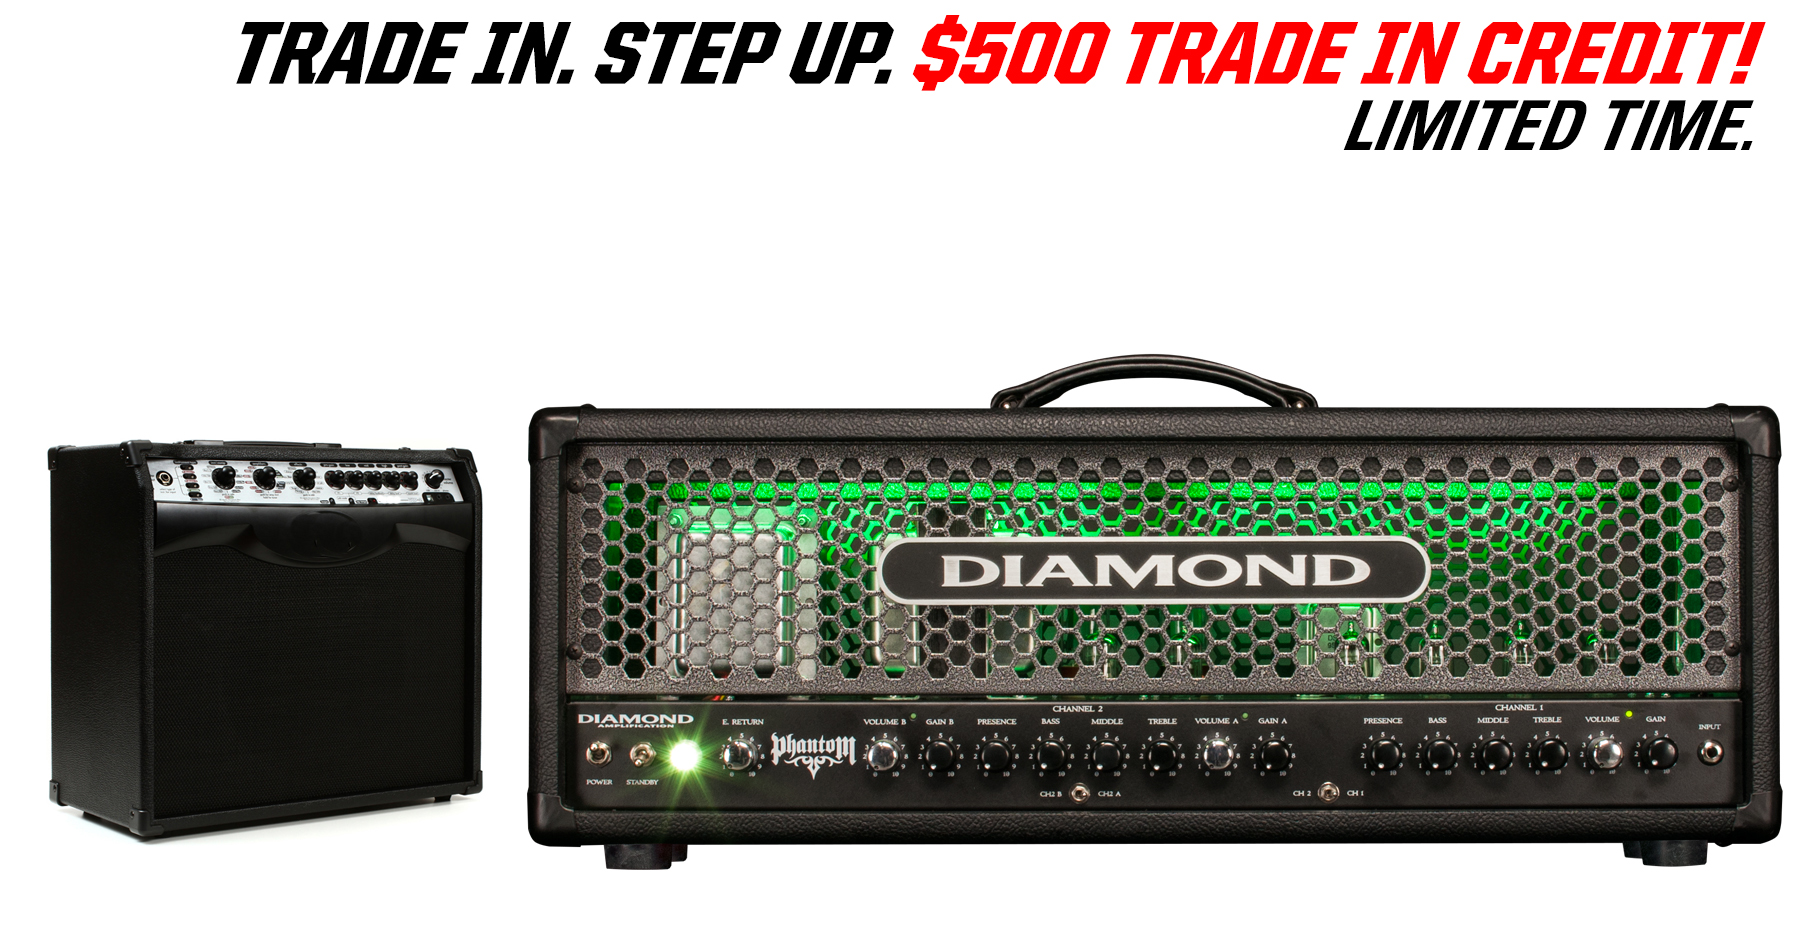 Trade in any amp and get $500 credit on a new USA Custom Diamond Amp!